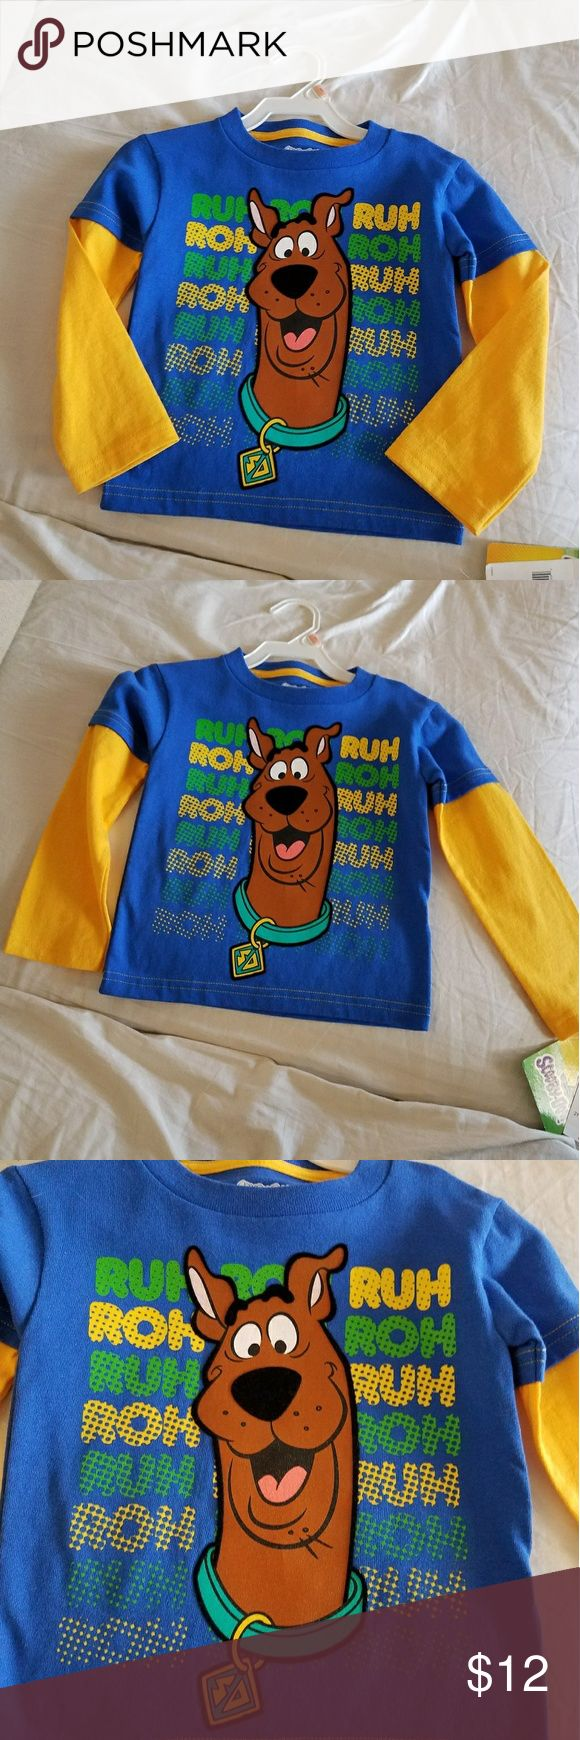 New Scooby Doo RUH ROH Long Sleeve T-shirt New Scooby Doo RUH ROH Long Sleeve T-shirt New with tags  Size 2y Blue with Yellow  Material 100%Cotton   I do bundle and offers are welcome Scooby doo Shirts & Tops Tees - Long Sleeve